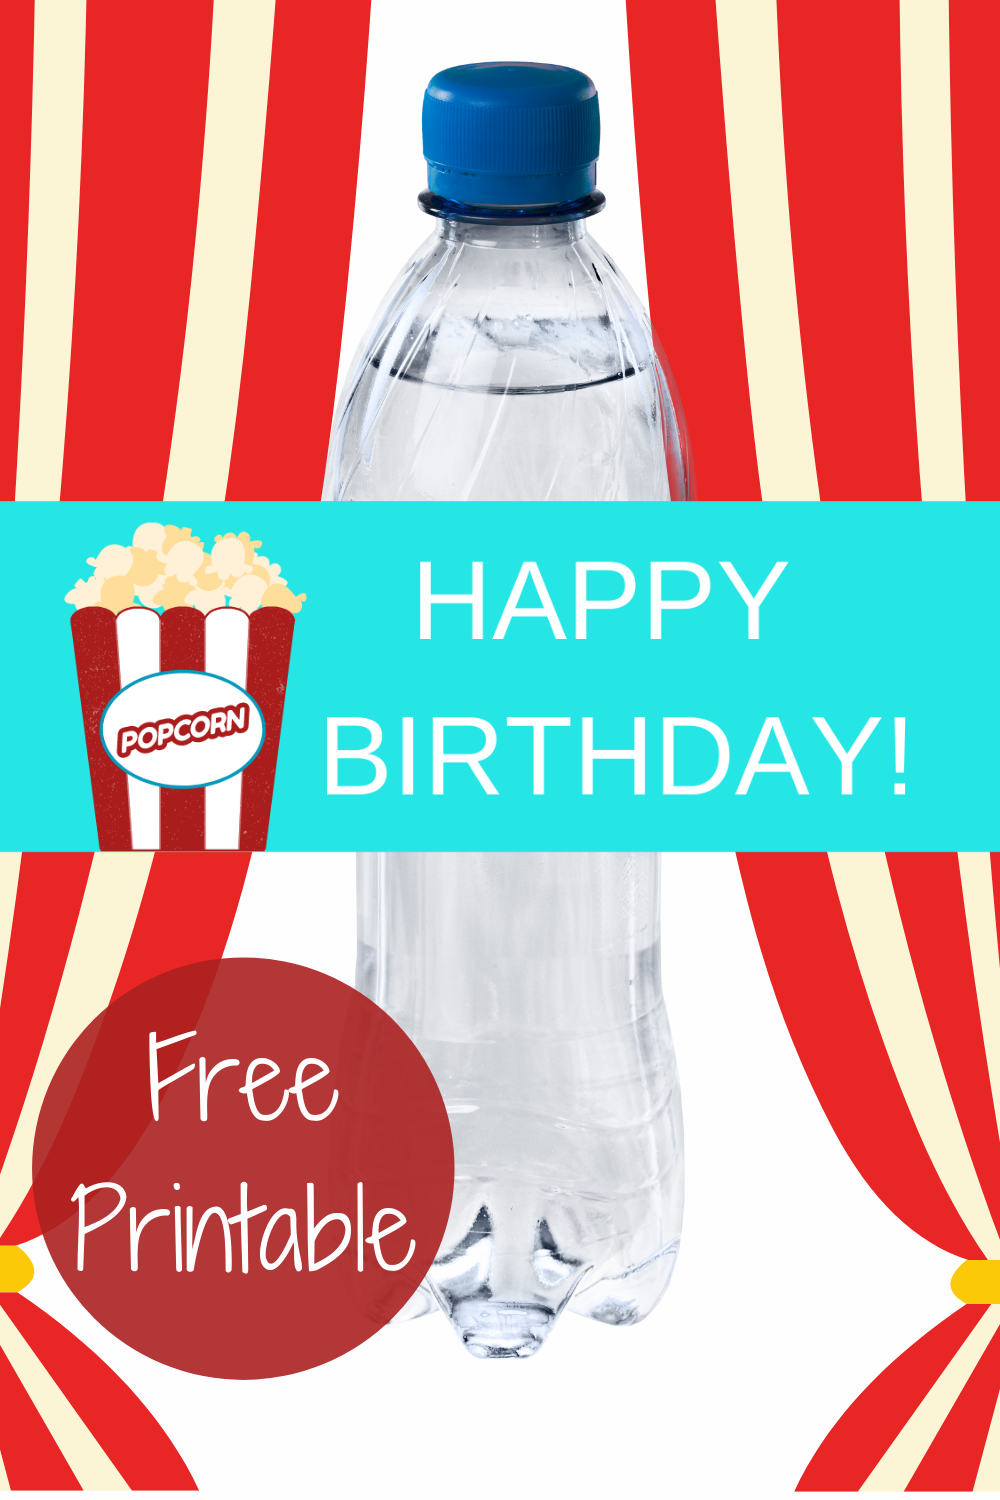 free download: carnival themed birthday party decorations